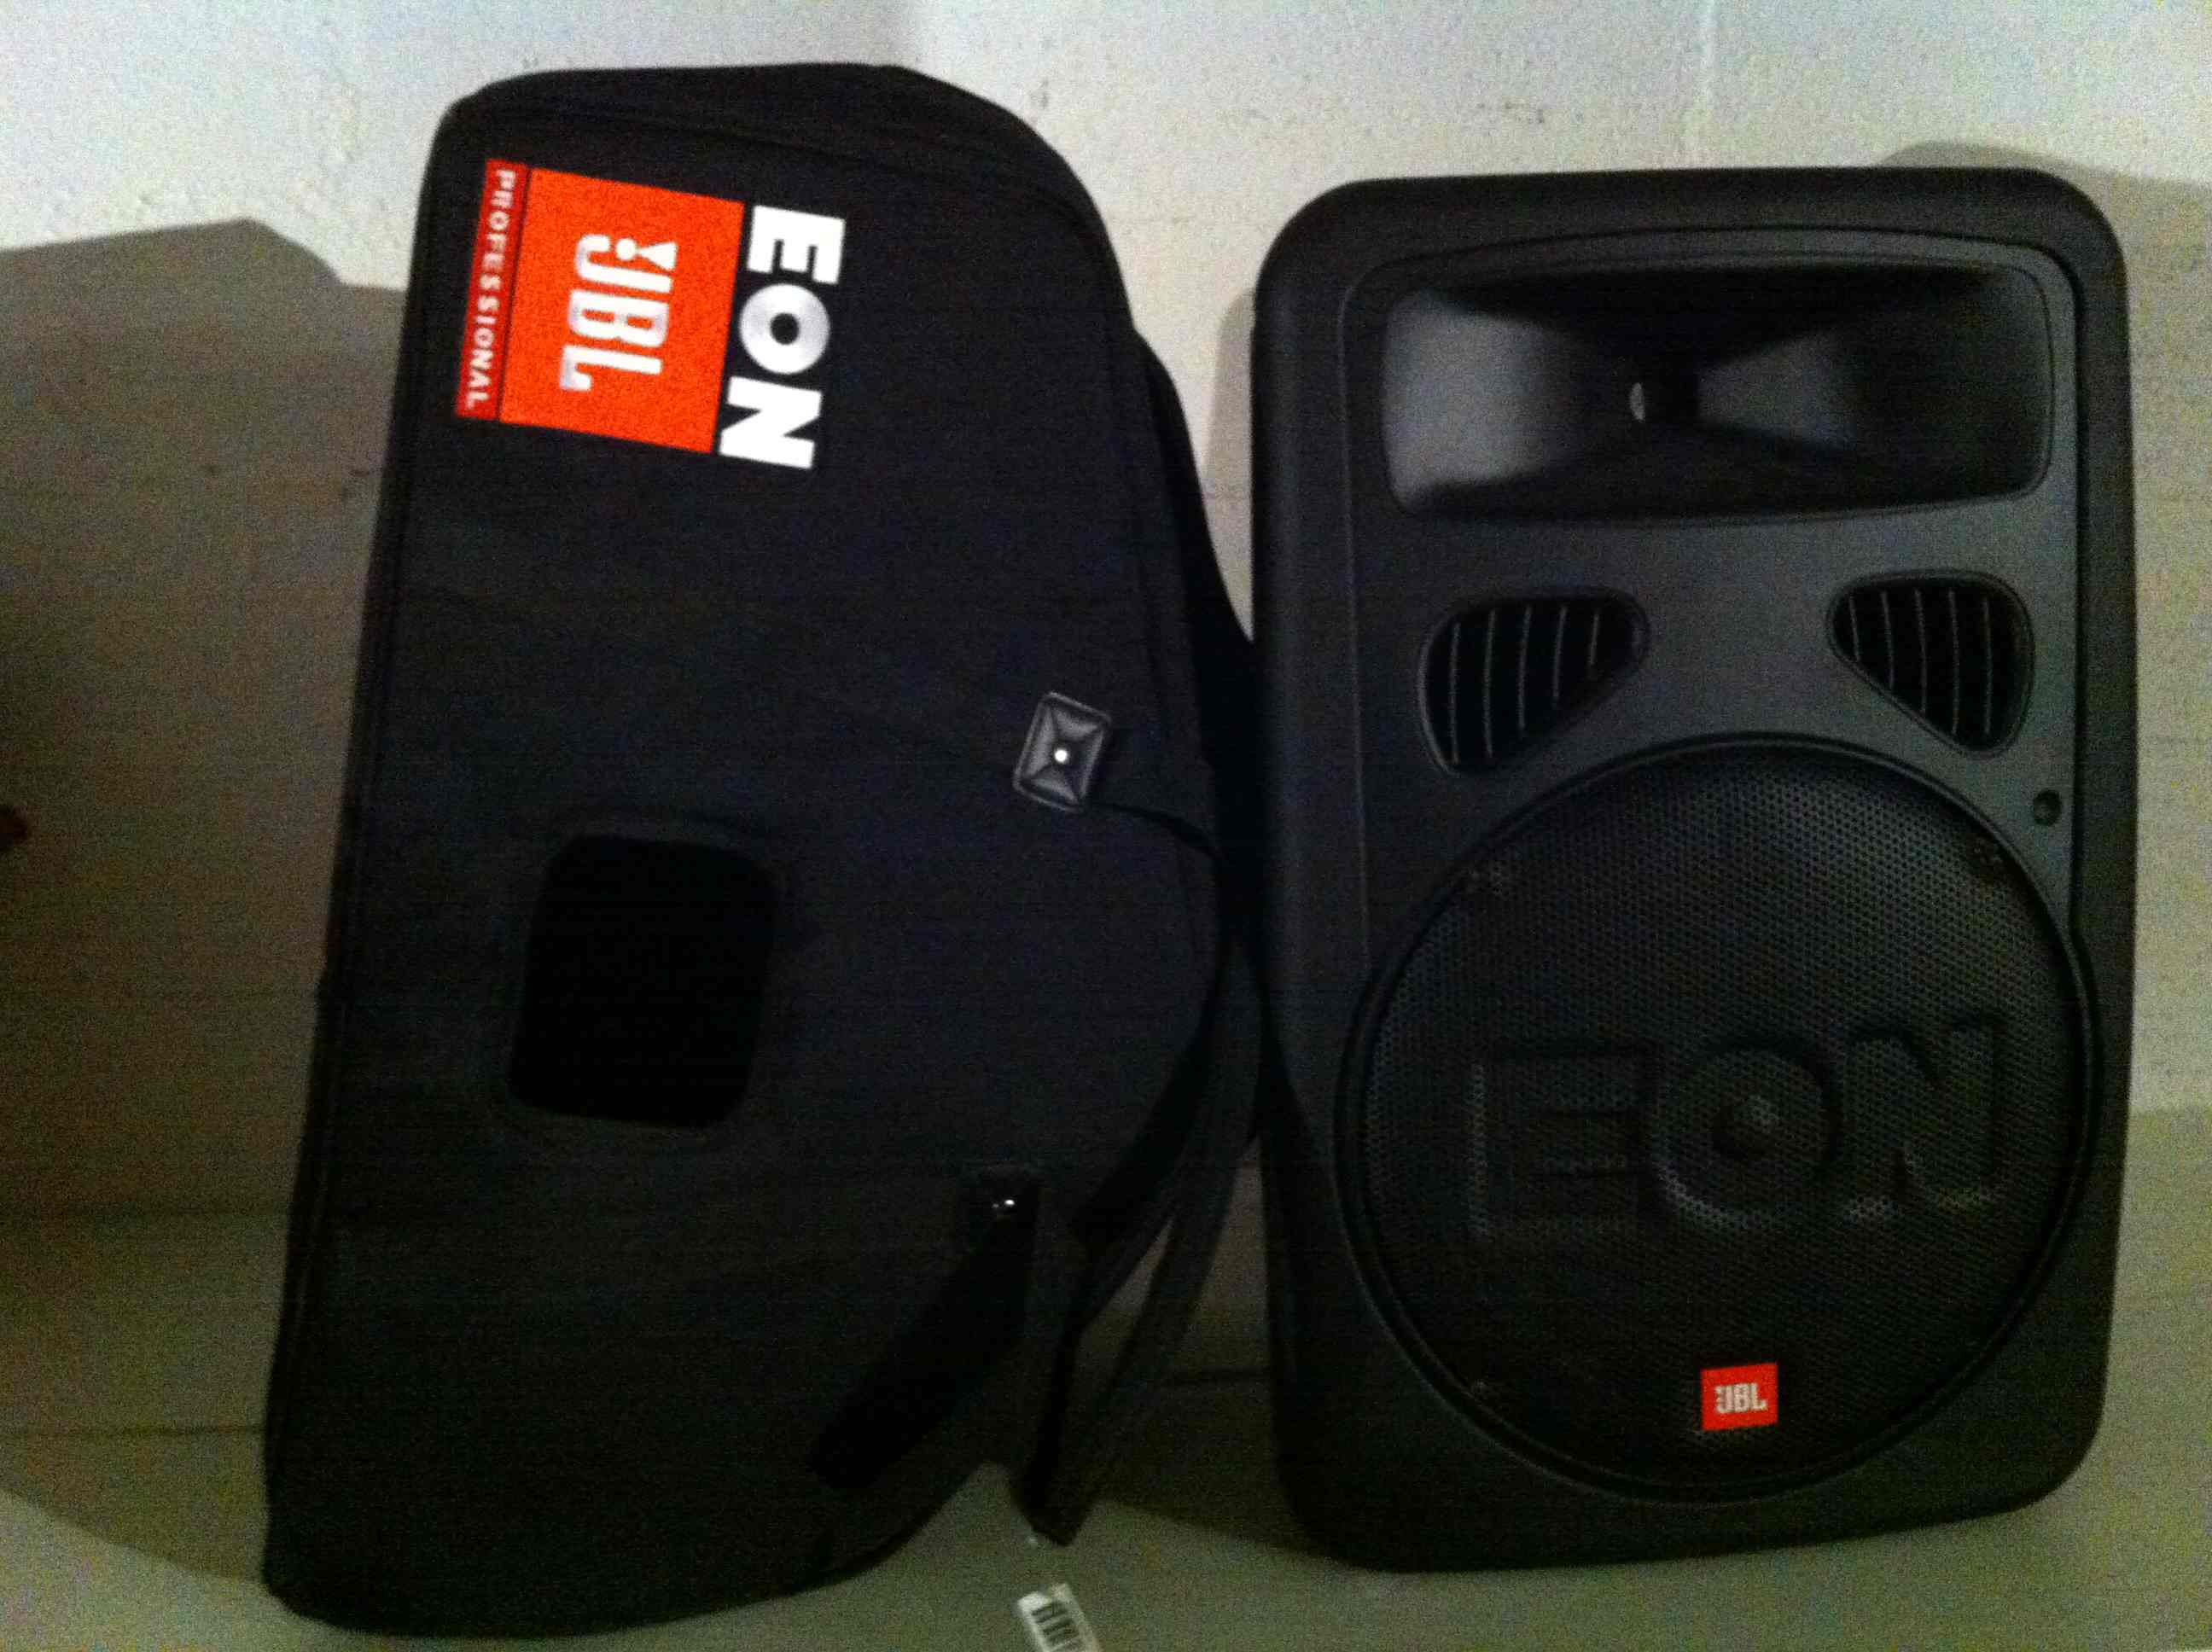 jbl eon g2 15 powered speakers manual